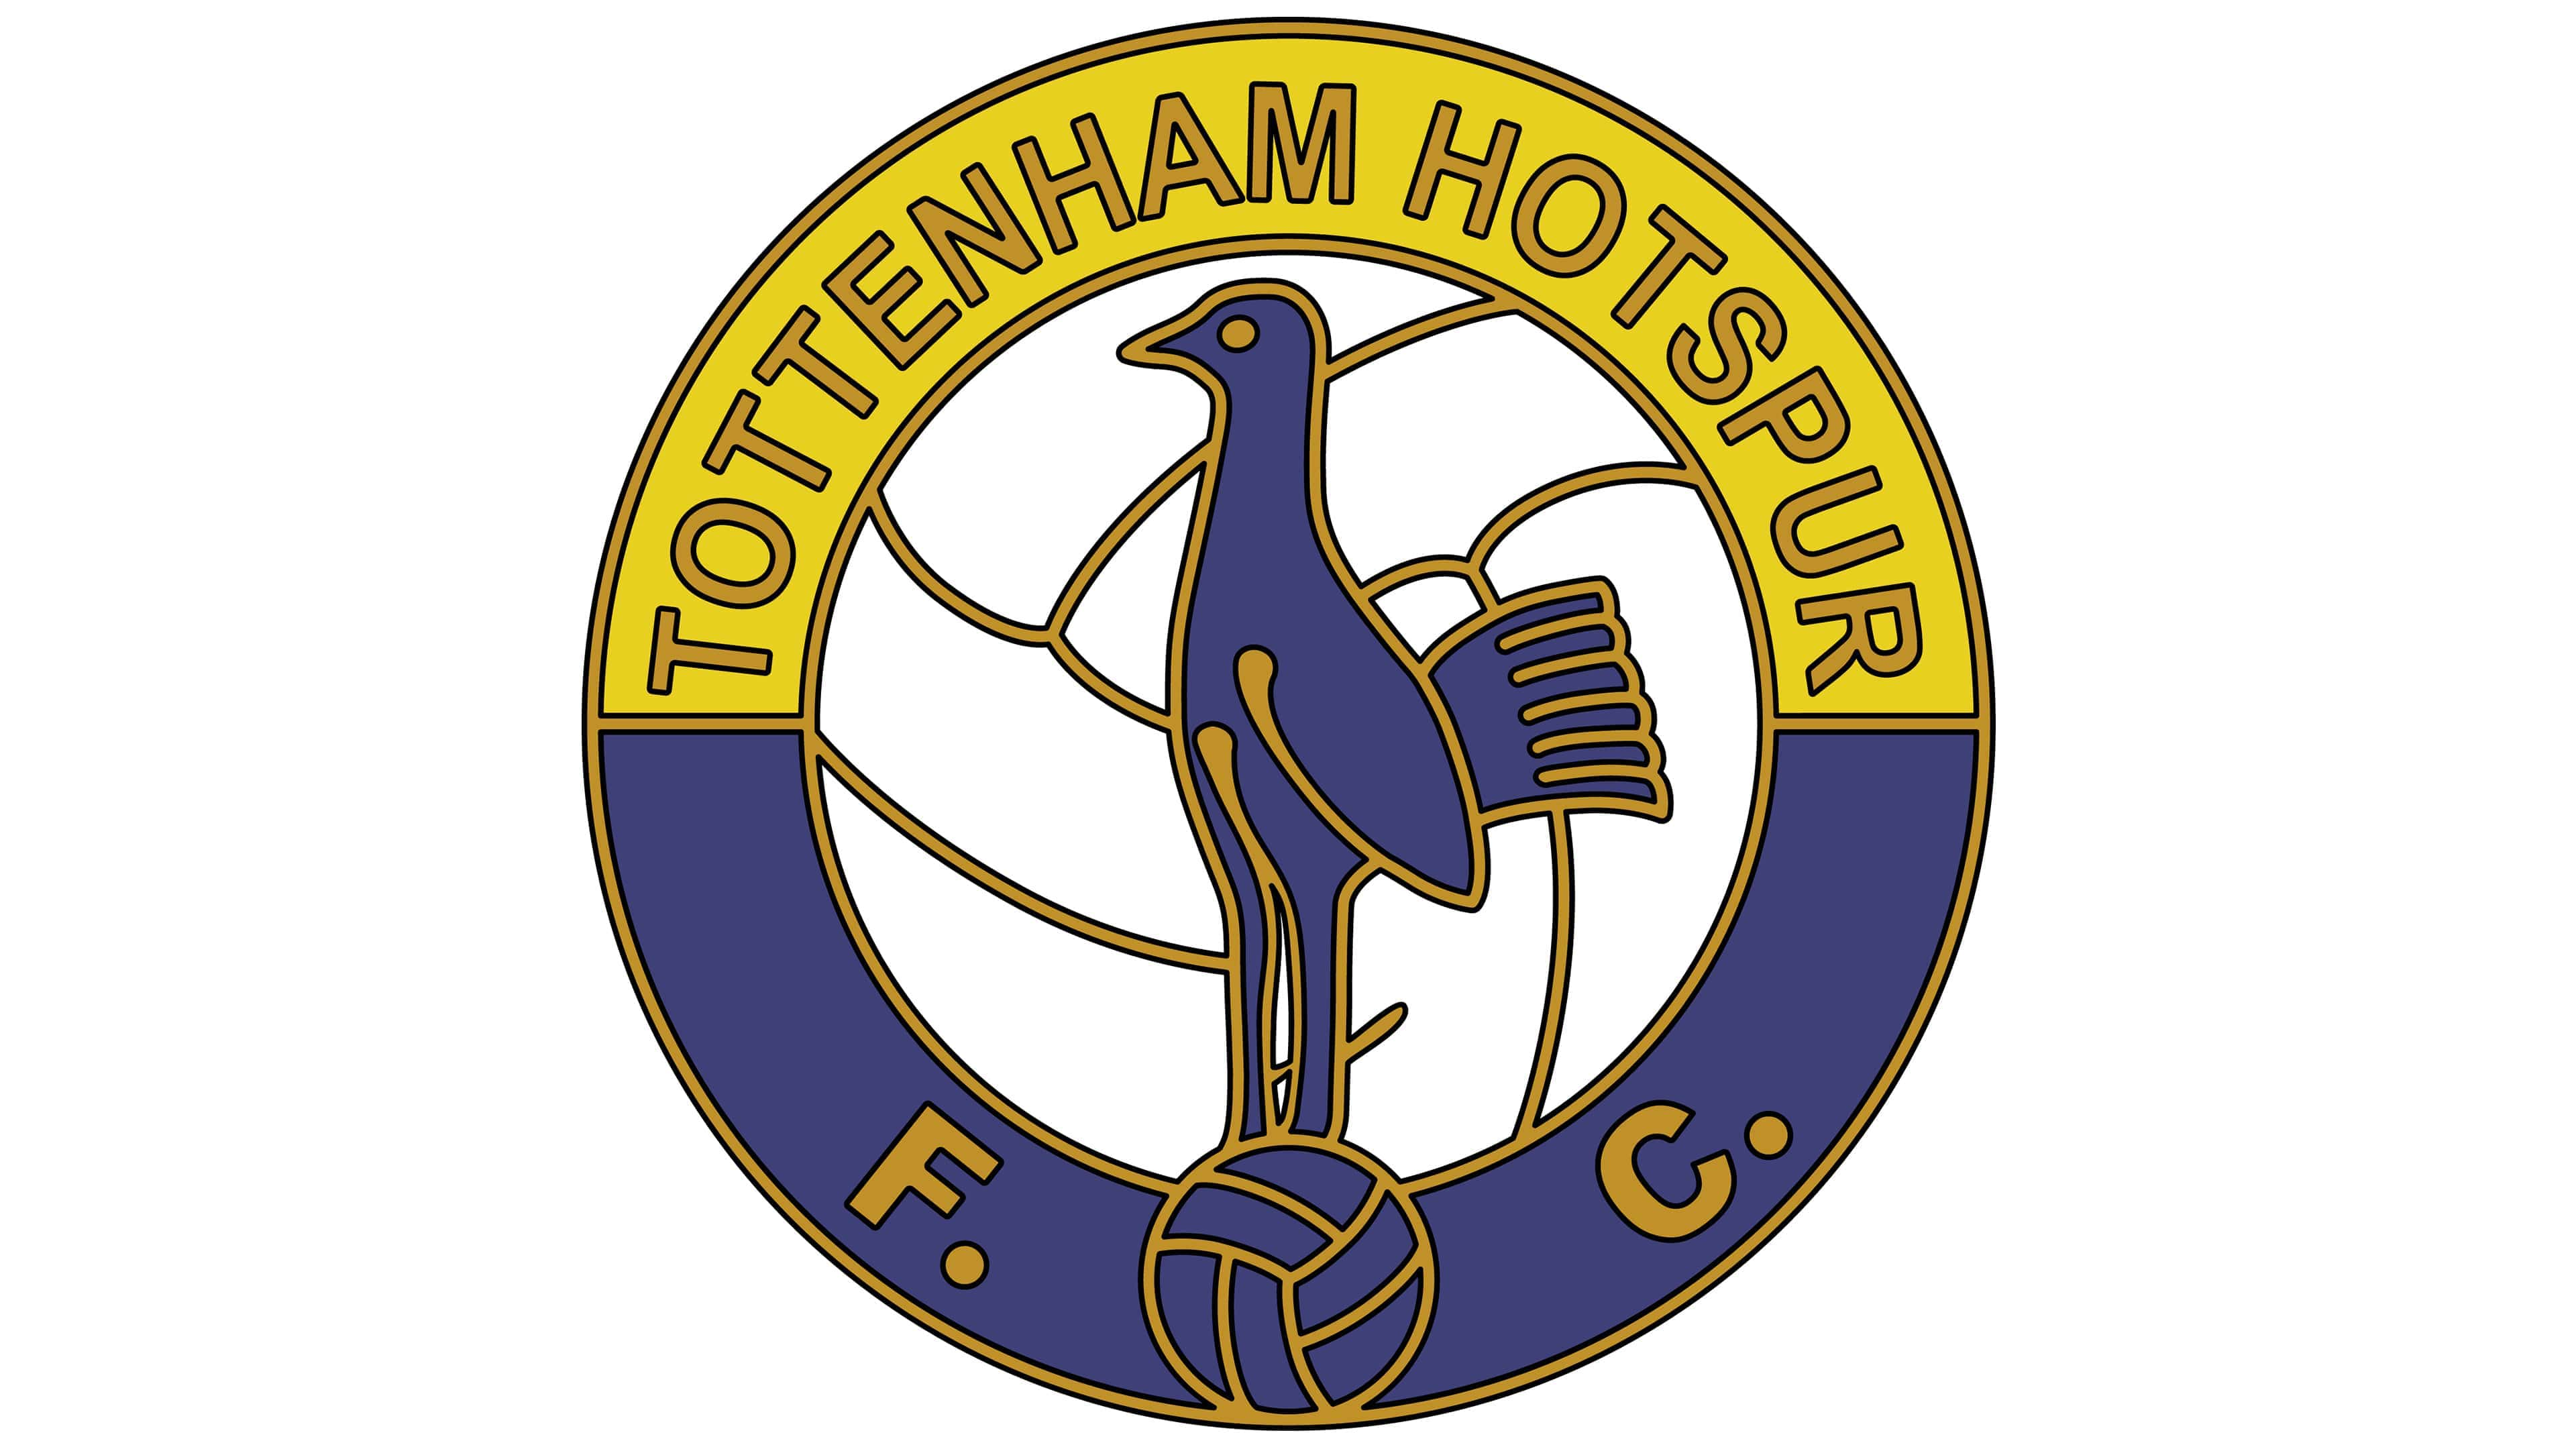 Tottenham Hotspur Logo The Most Famous Brands And Company Logos In The World